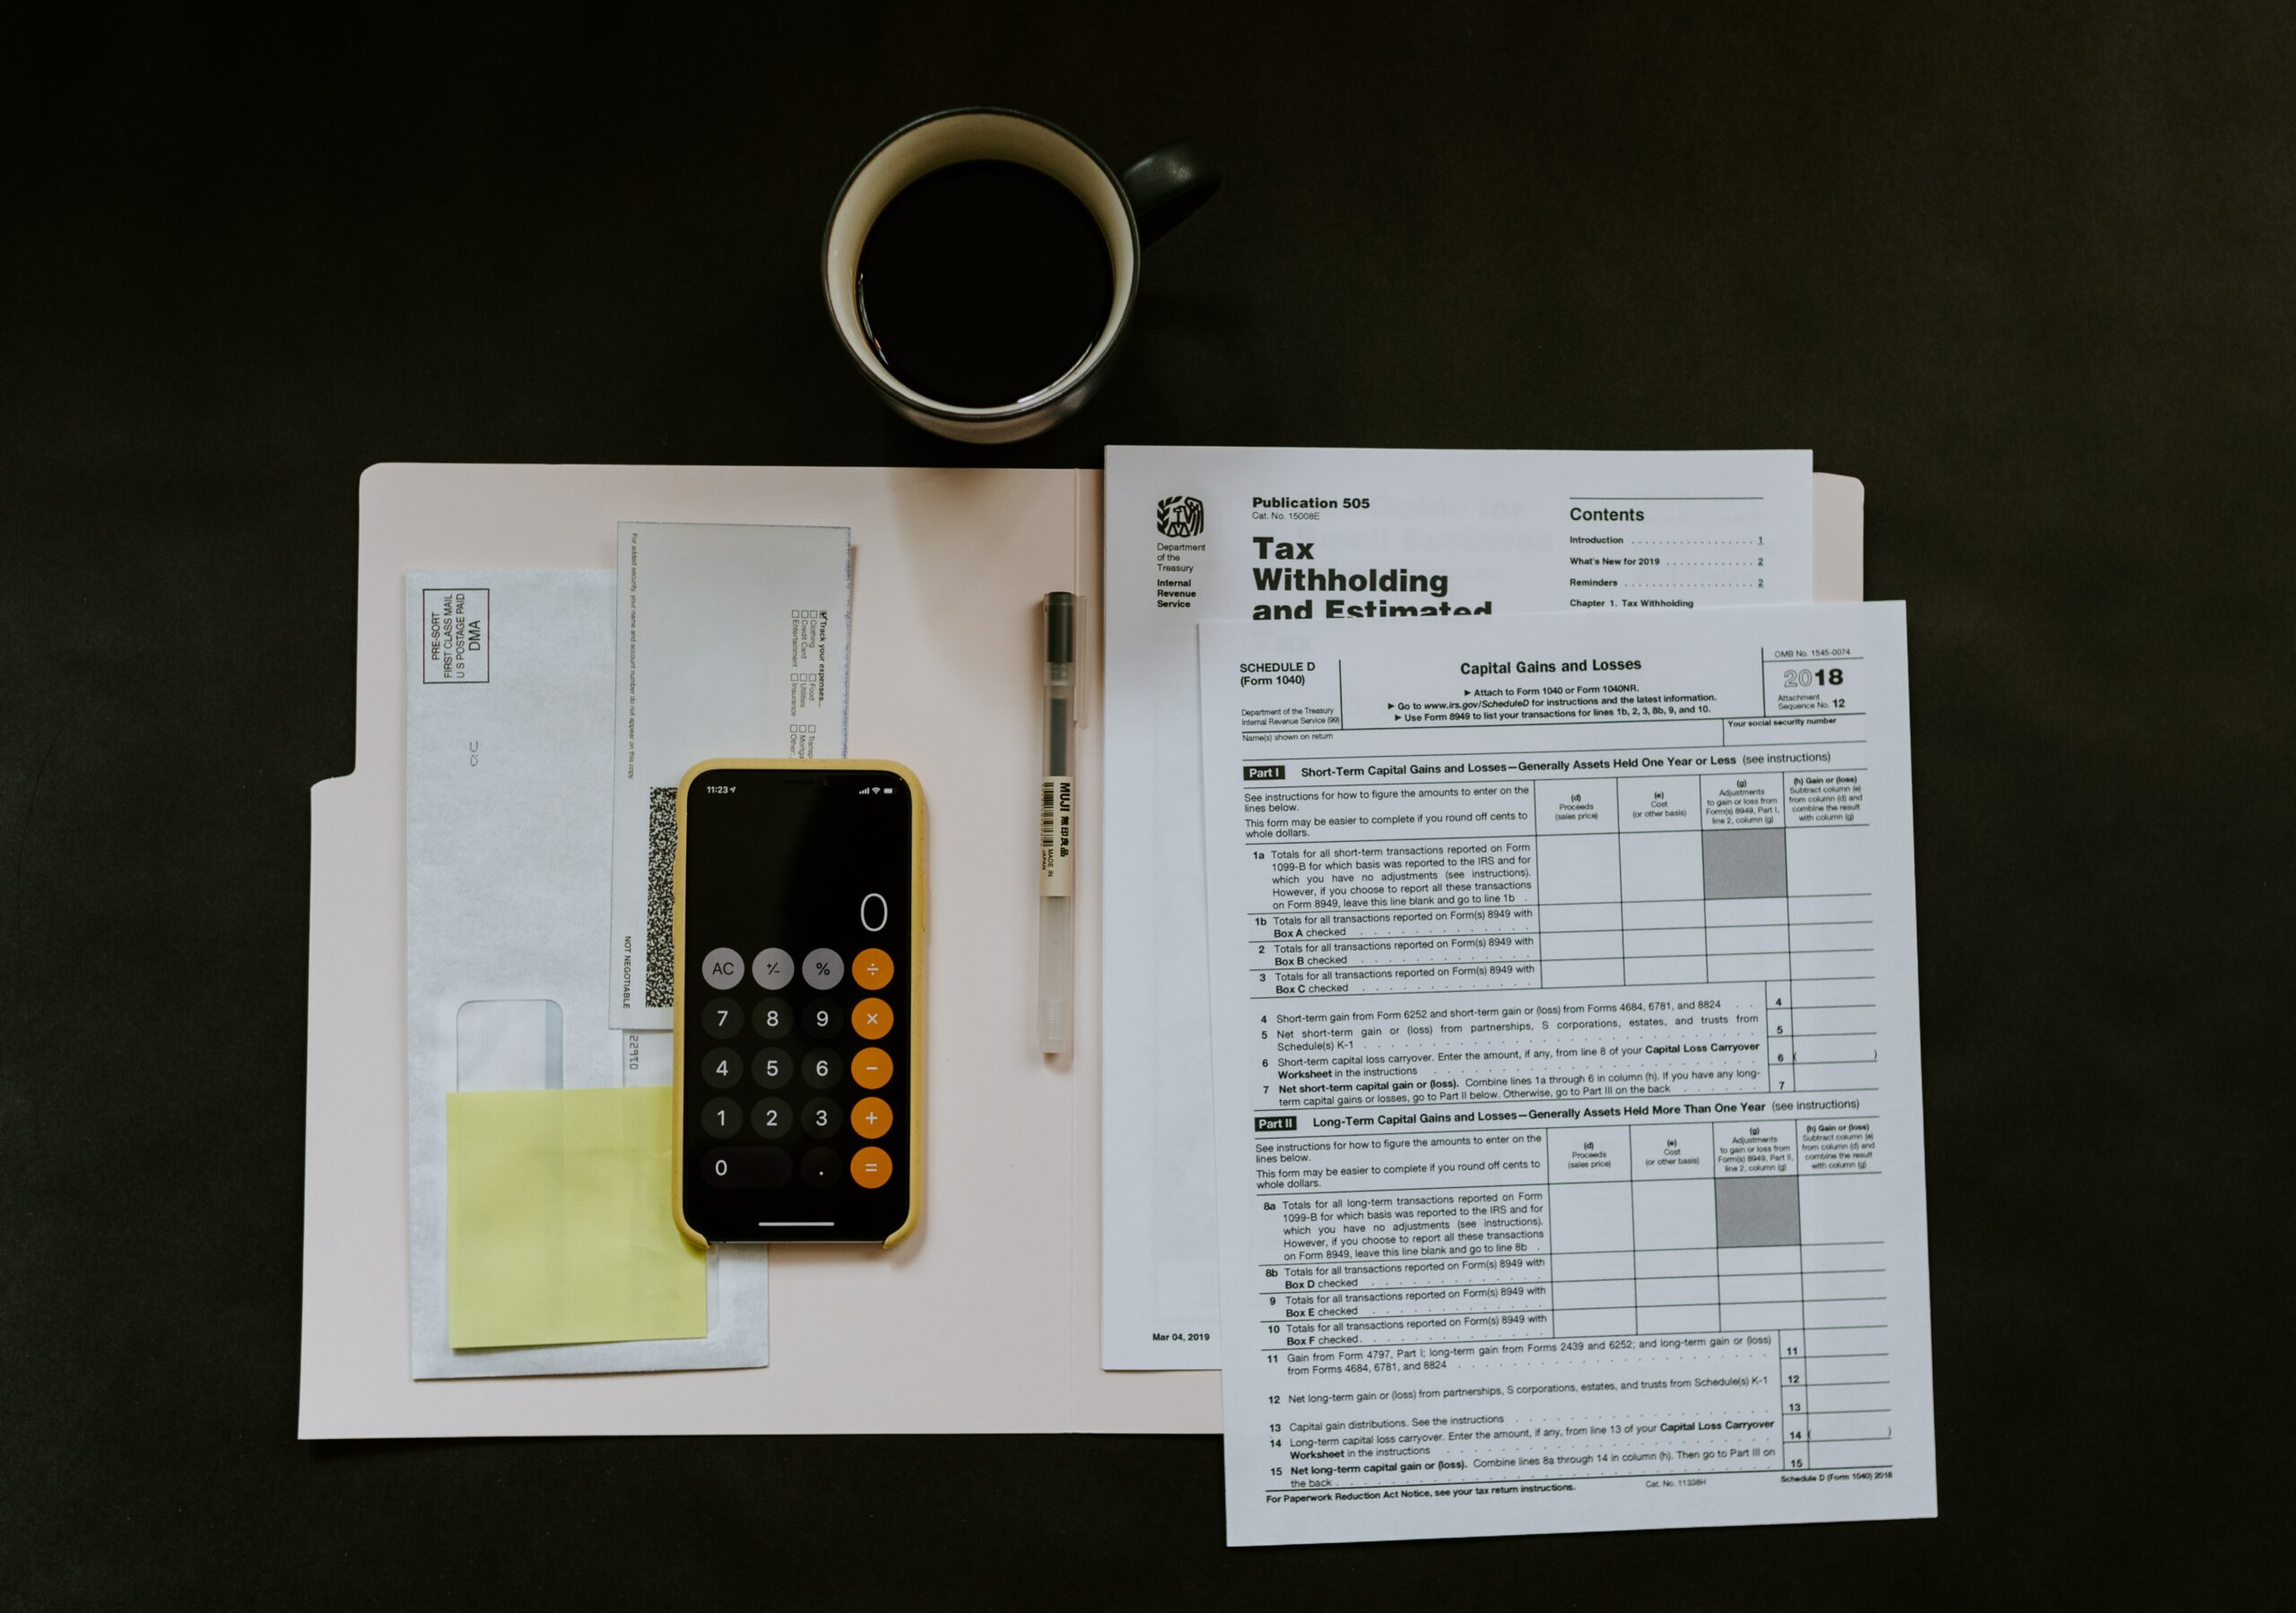 Ep 17: Do You Have to Pay Taxes on Social Security Benefits?